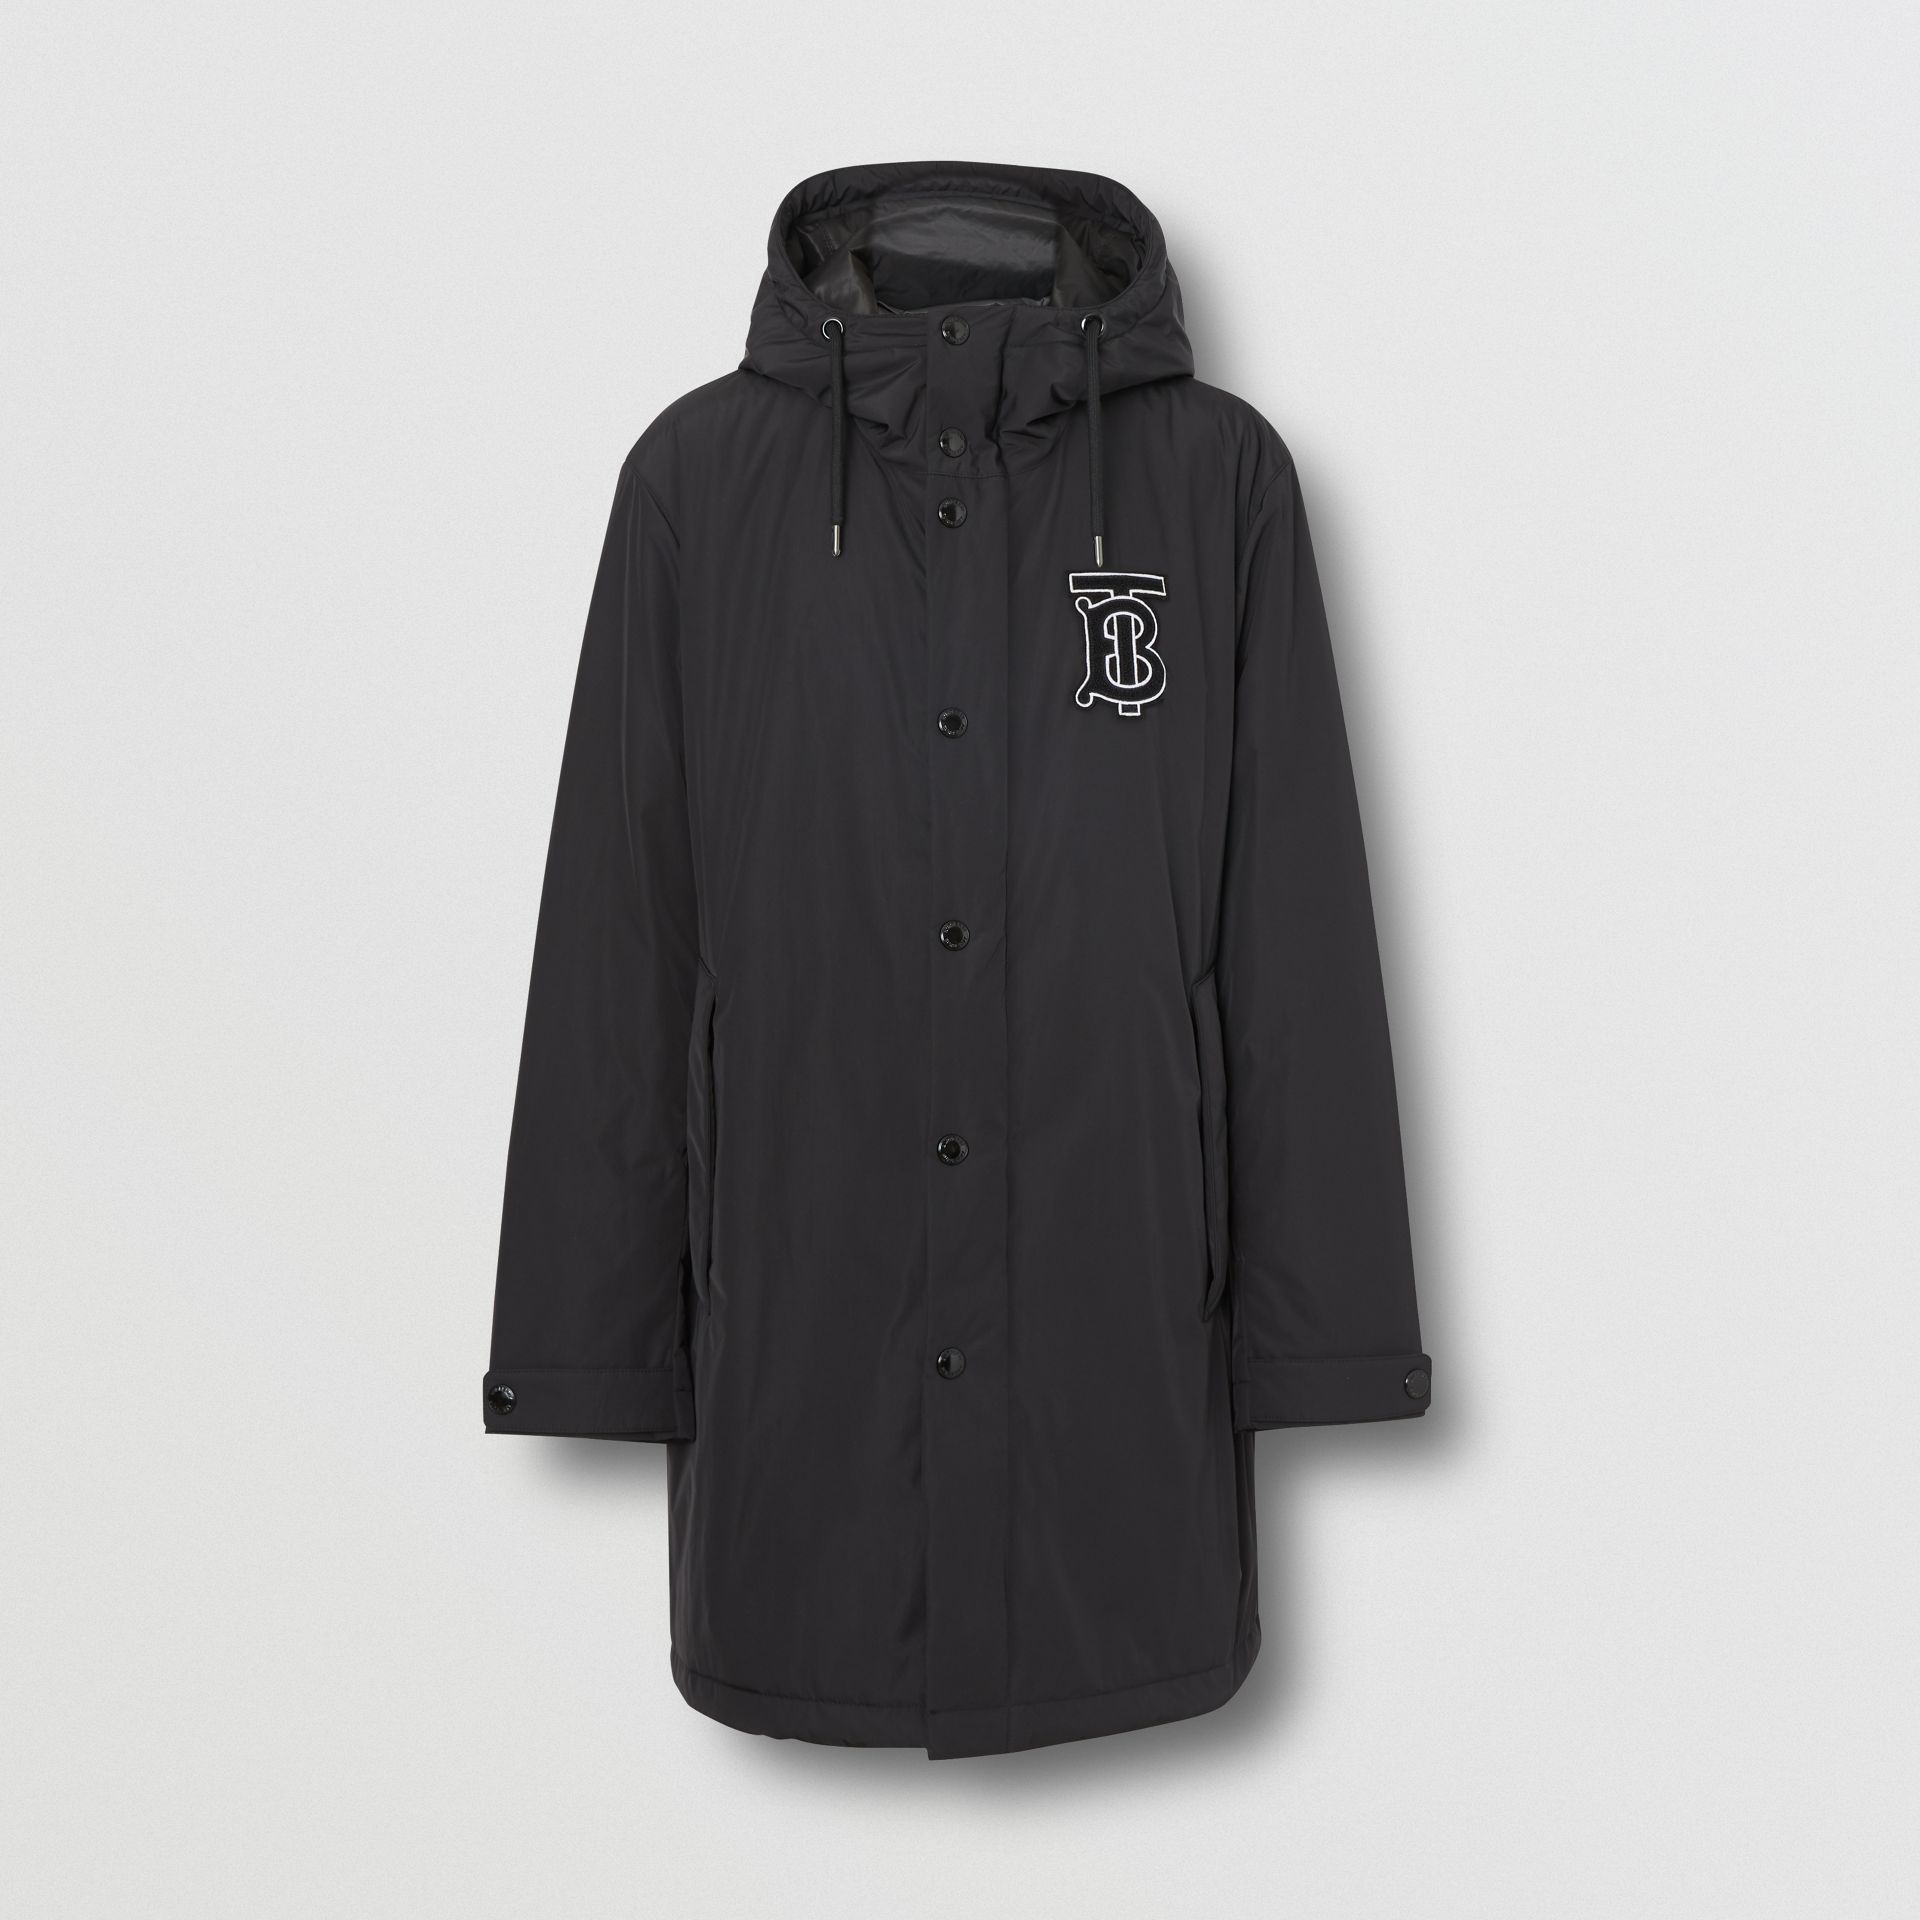 Monogram Motif Nylon Twill Hooded Coat in Black - Men | Burberry United Kingdom - gallery image 3